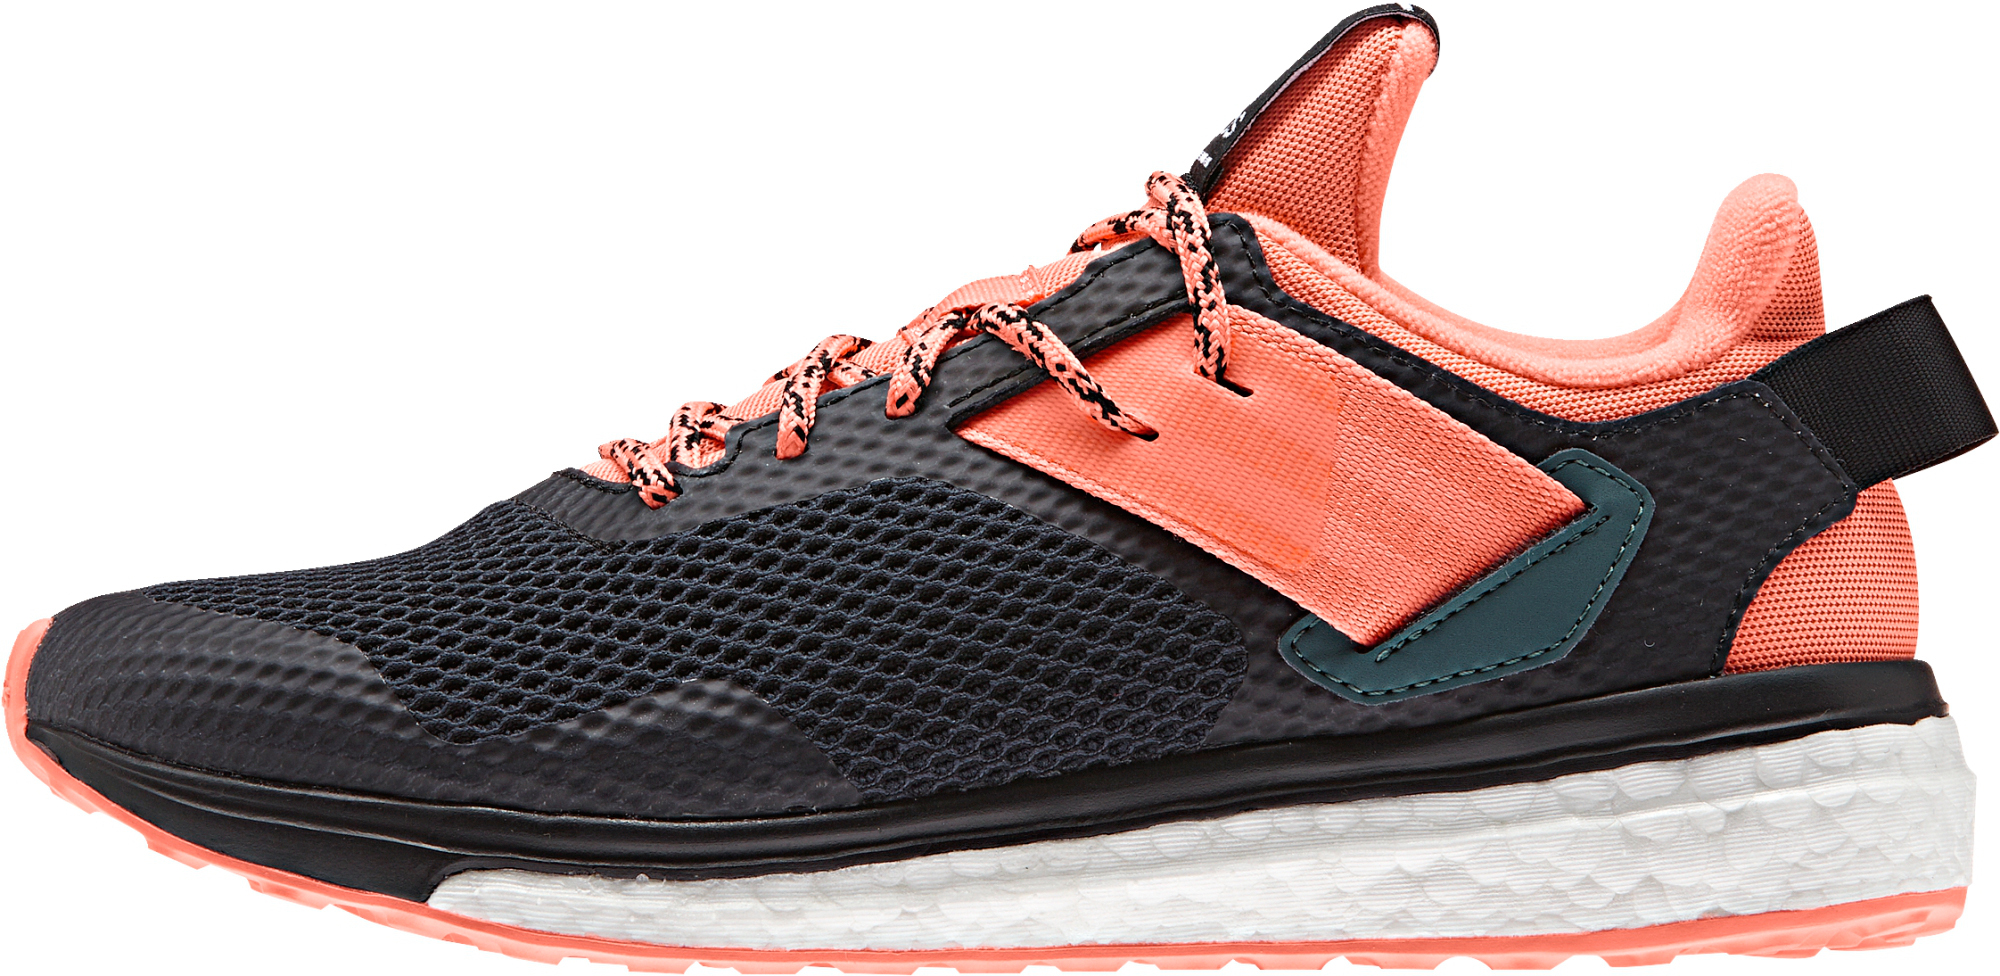 wiggle.com | adidas Women's Response Boost 3 Shoes | Running Shoes